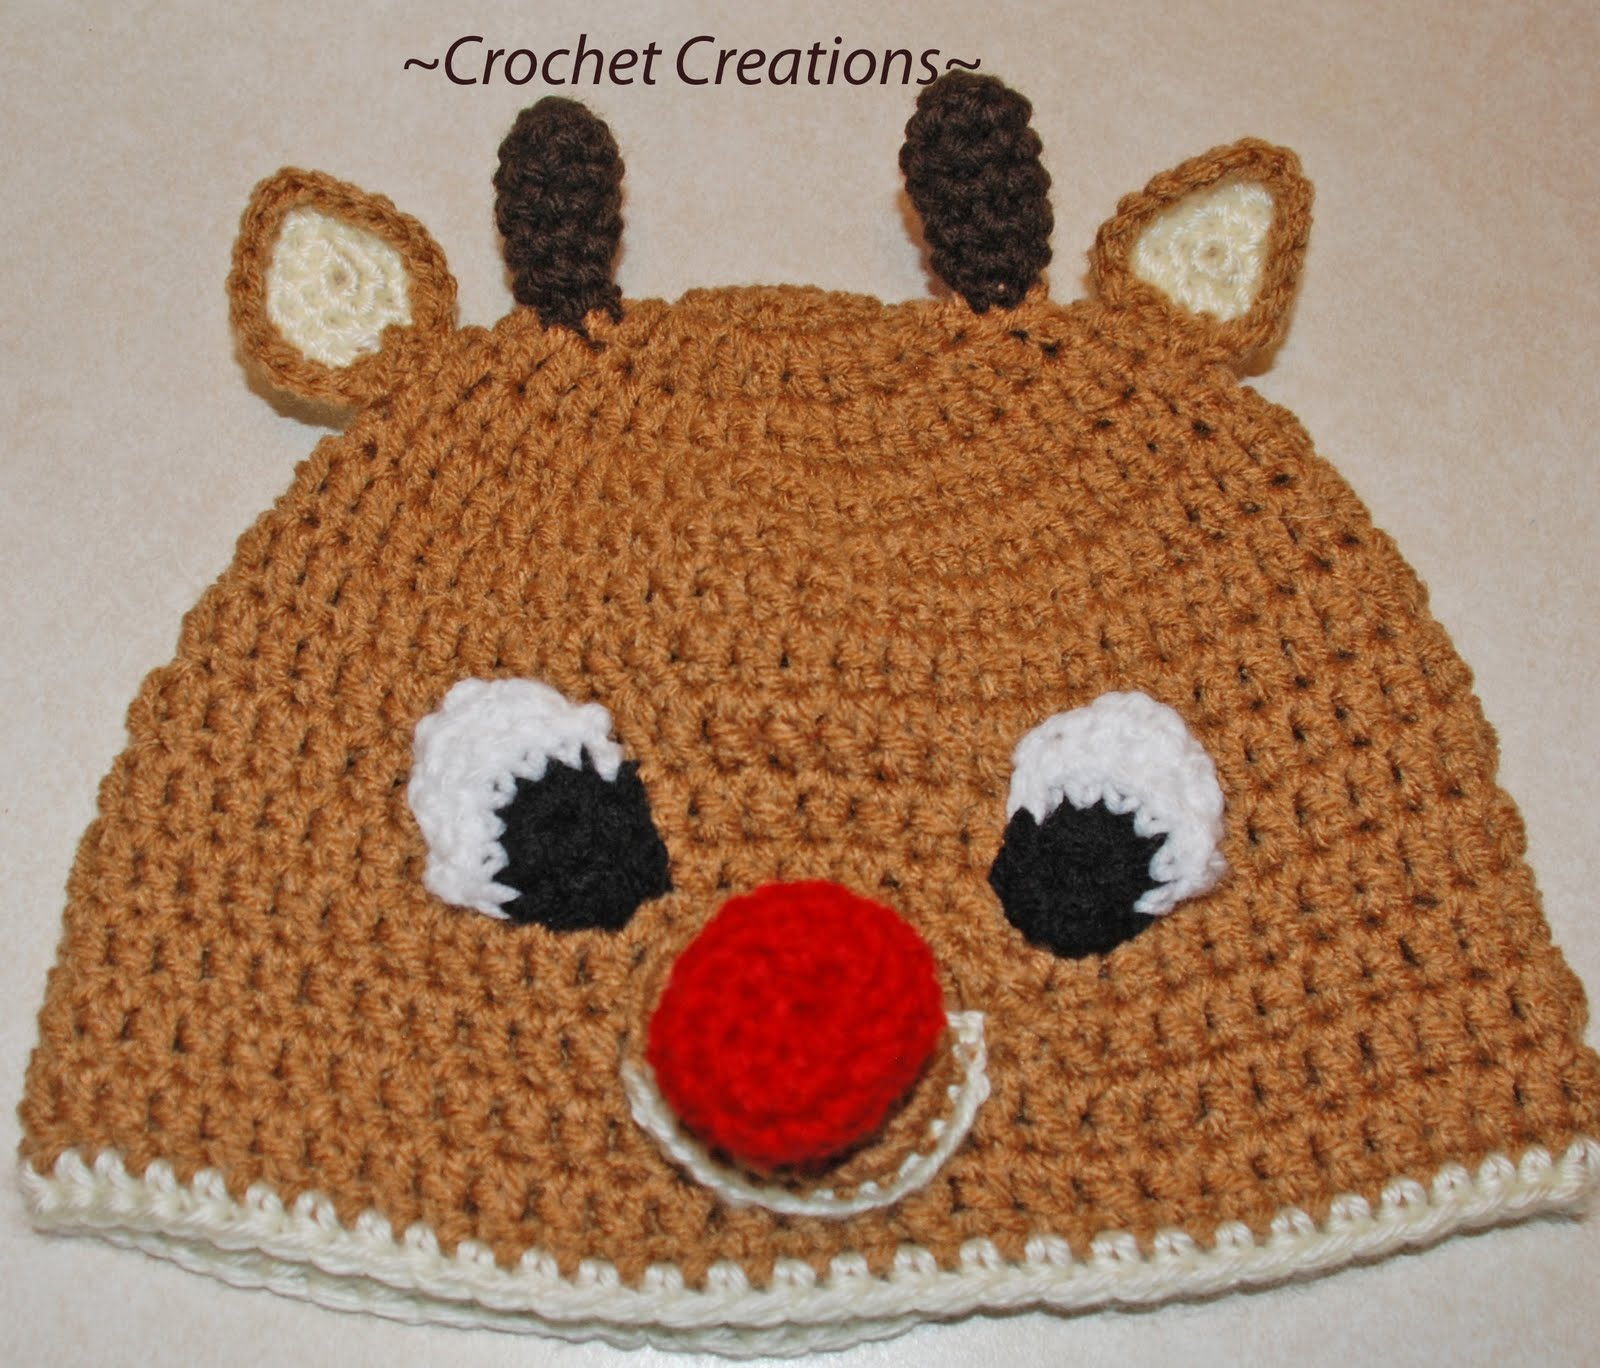 Free Crochet Patterns For Reindeer Hats : Amys Crochet Creative Creations: Crochet Rudolph Reindeer ...